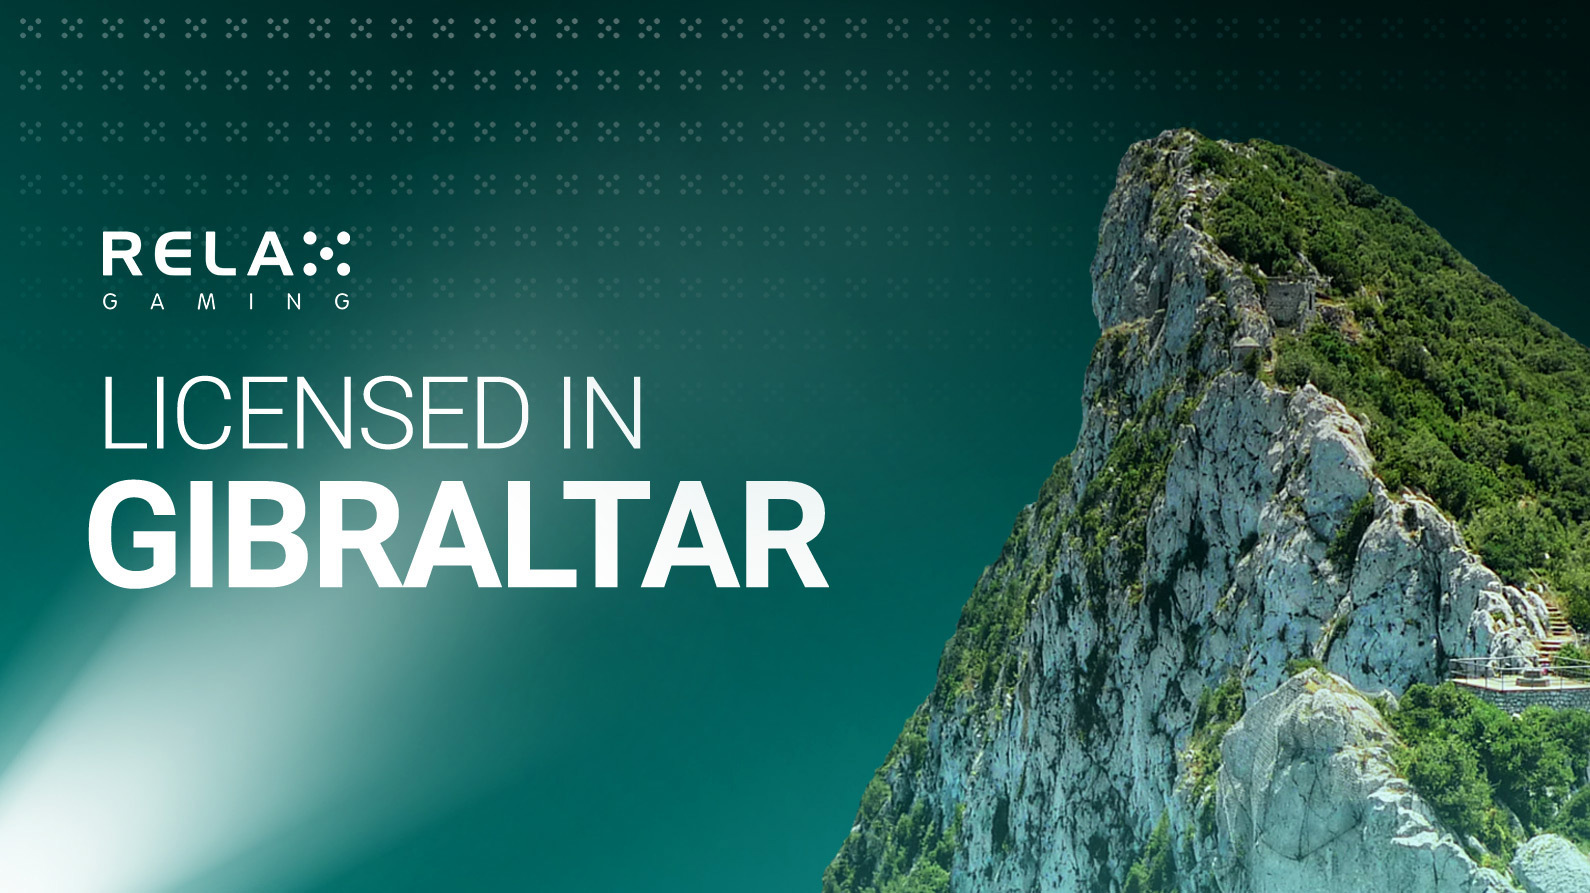 Relax Gaming secures B2B licence from Gibraltar regulator